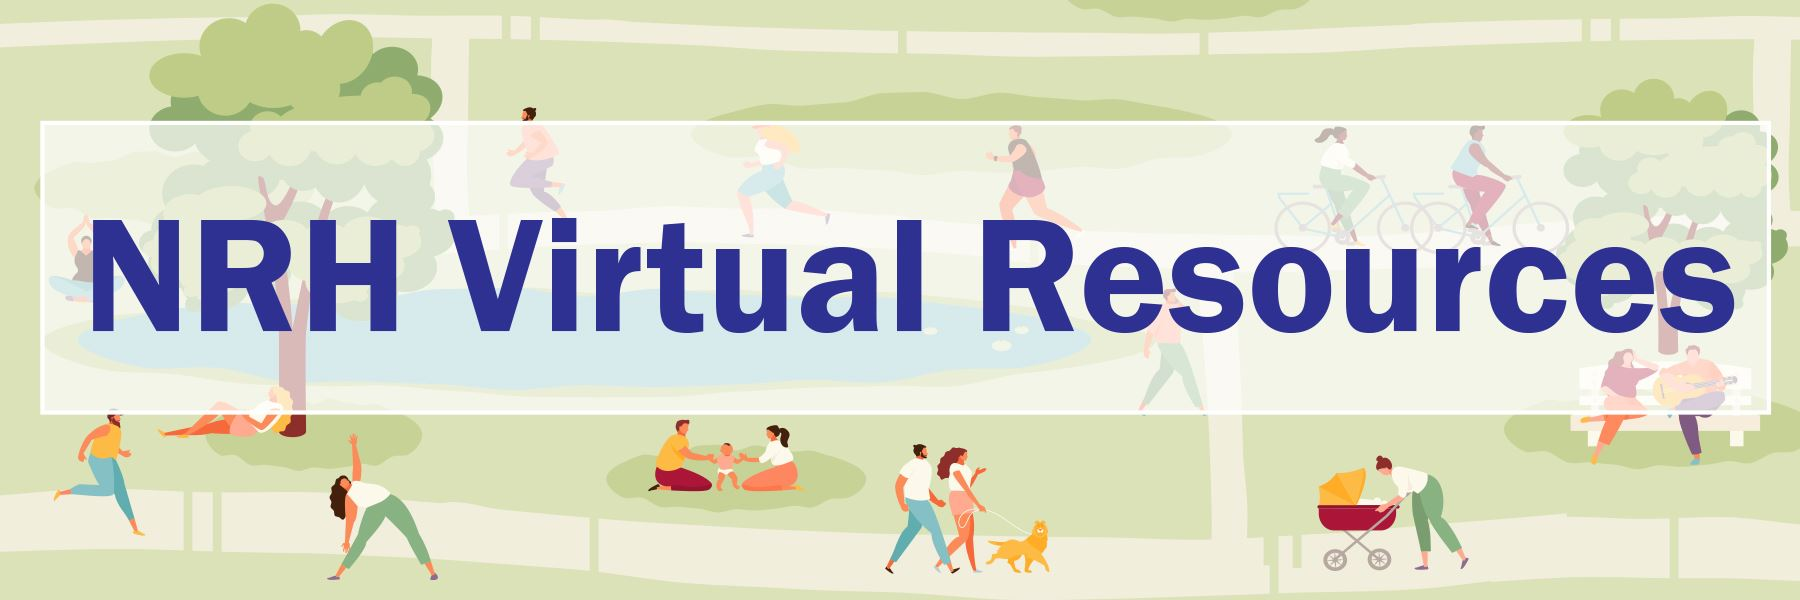 Virtual Resources Header